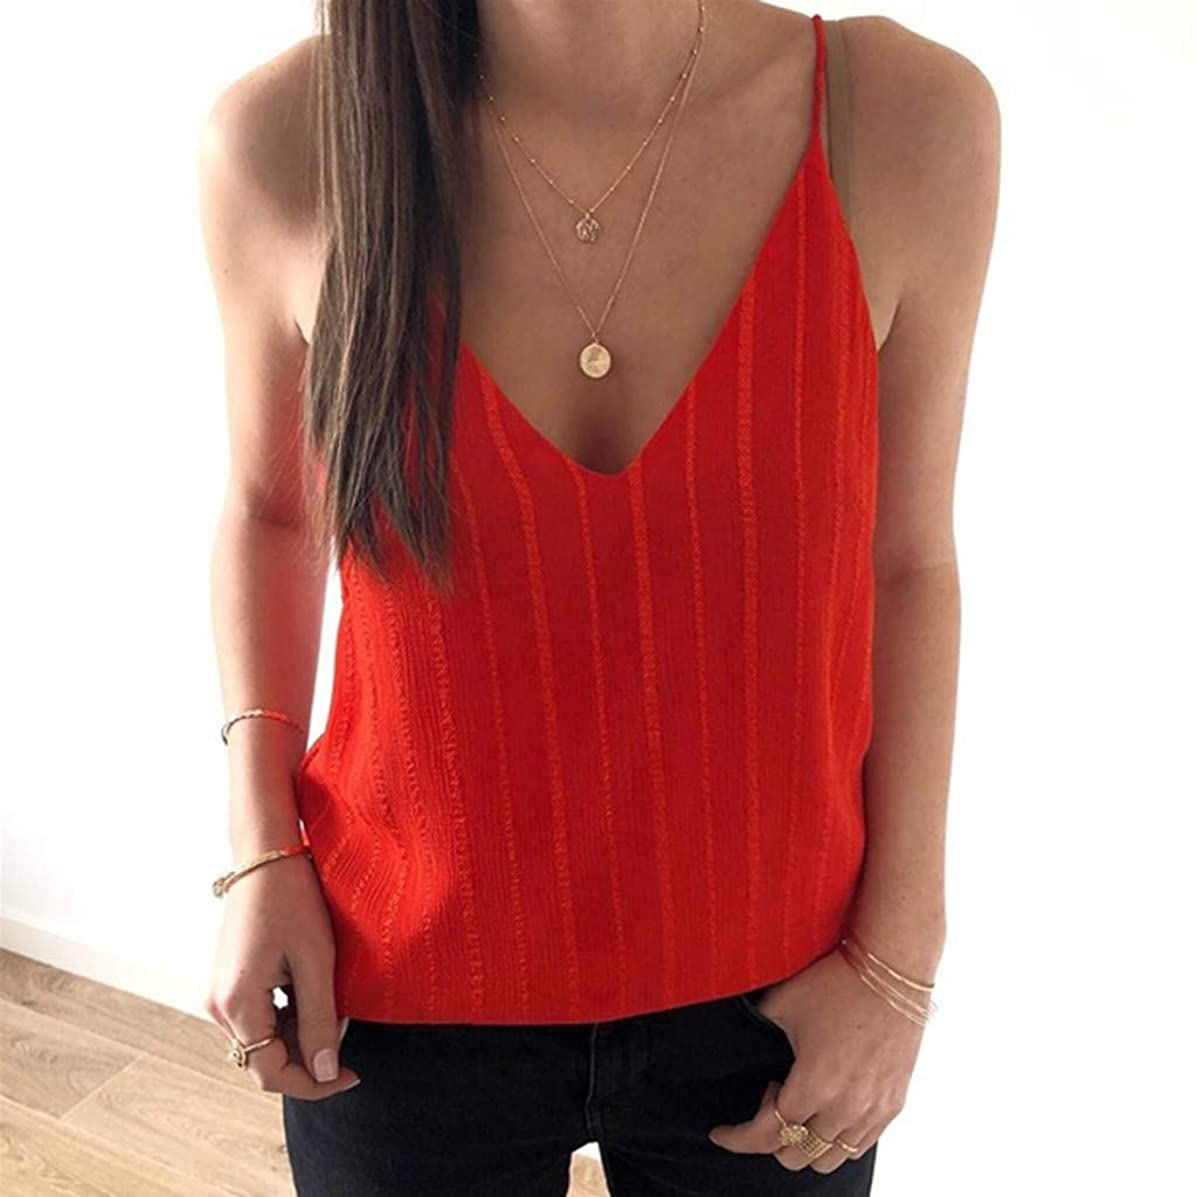 ??BIBICAT?? Women's Sexy Sling V-Neck Tops,Solid Color Vertical Striped ?Light?Shirt Blouse Tee Camisole